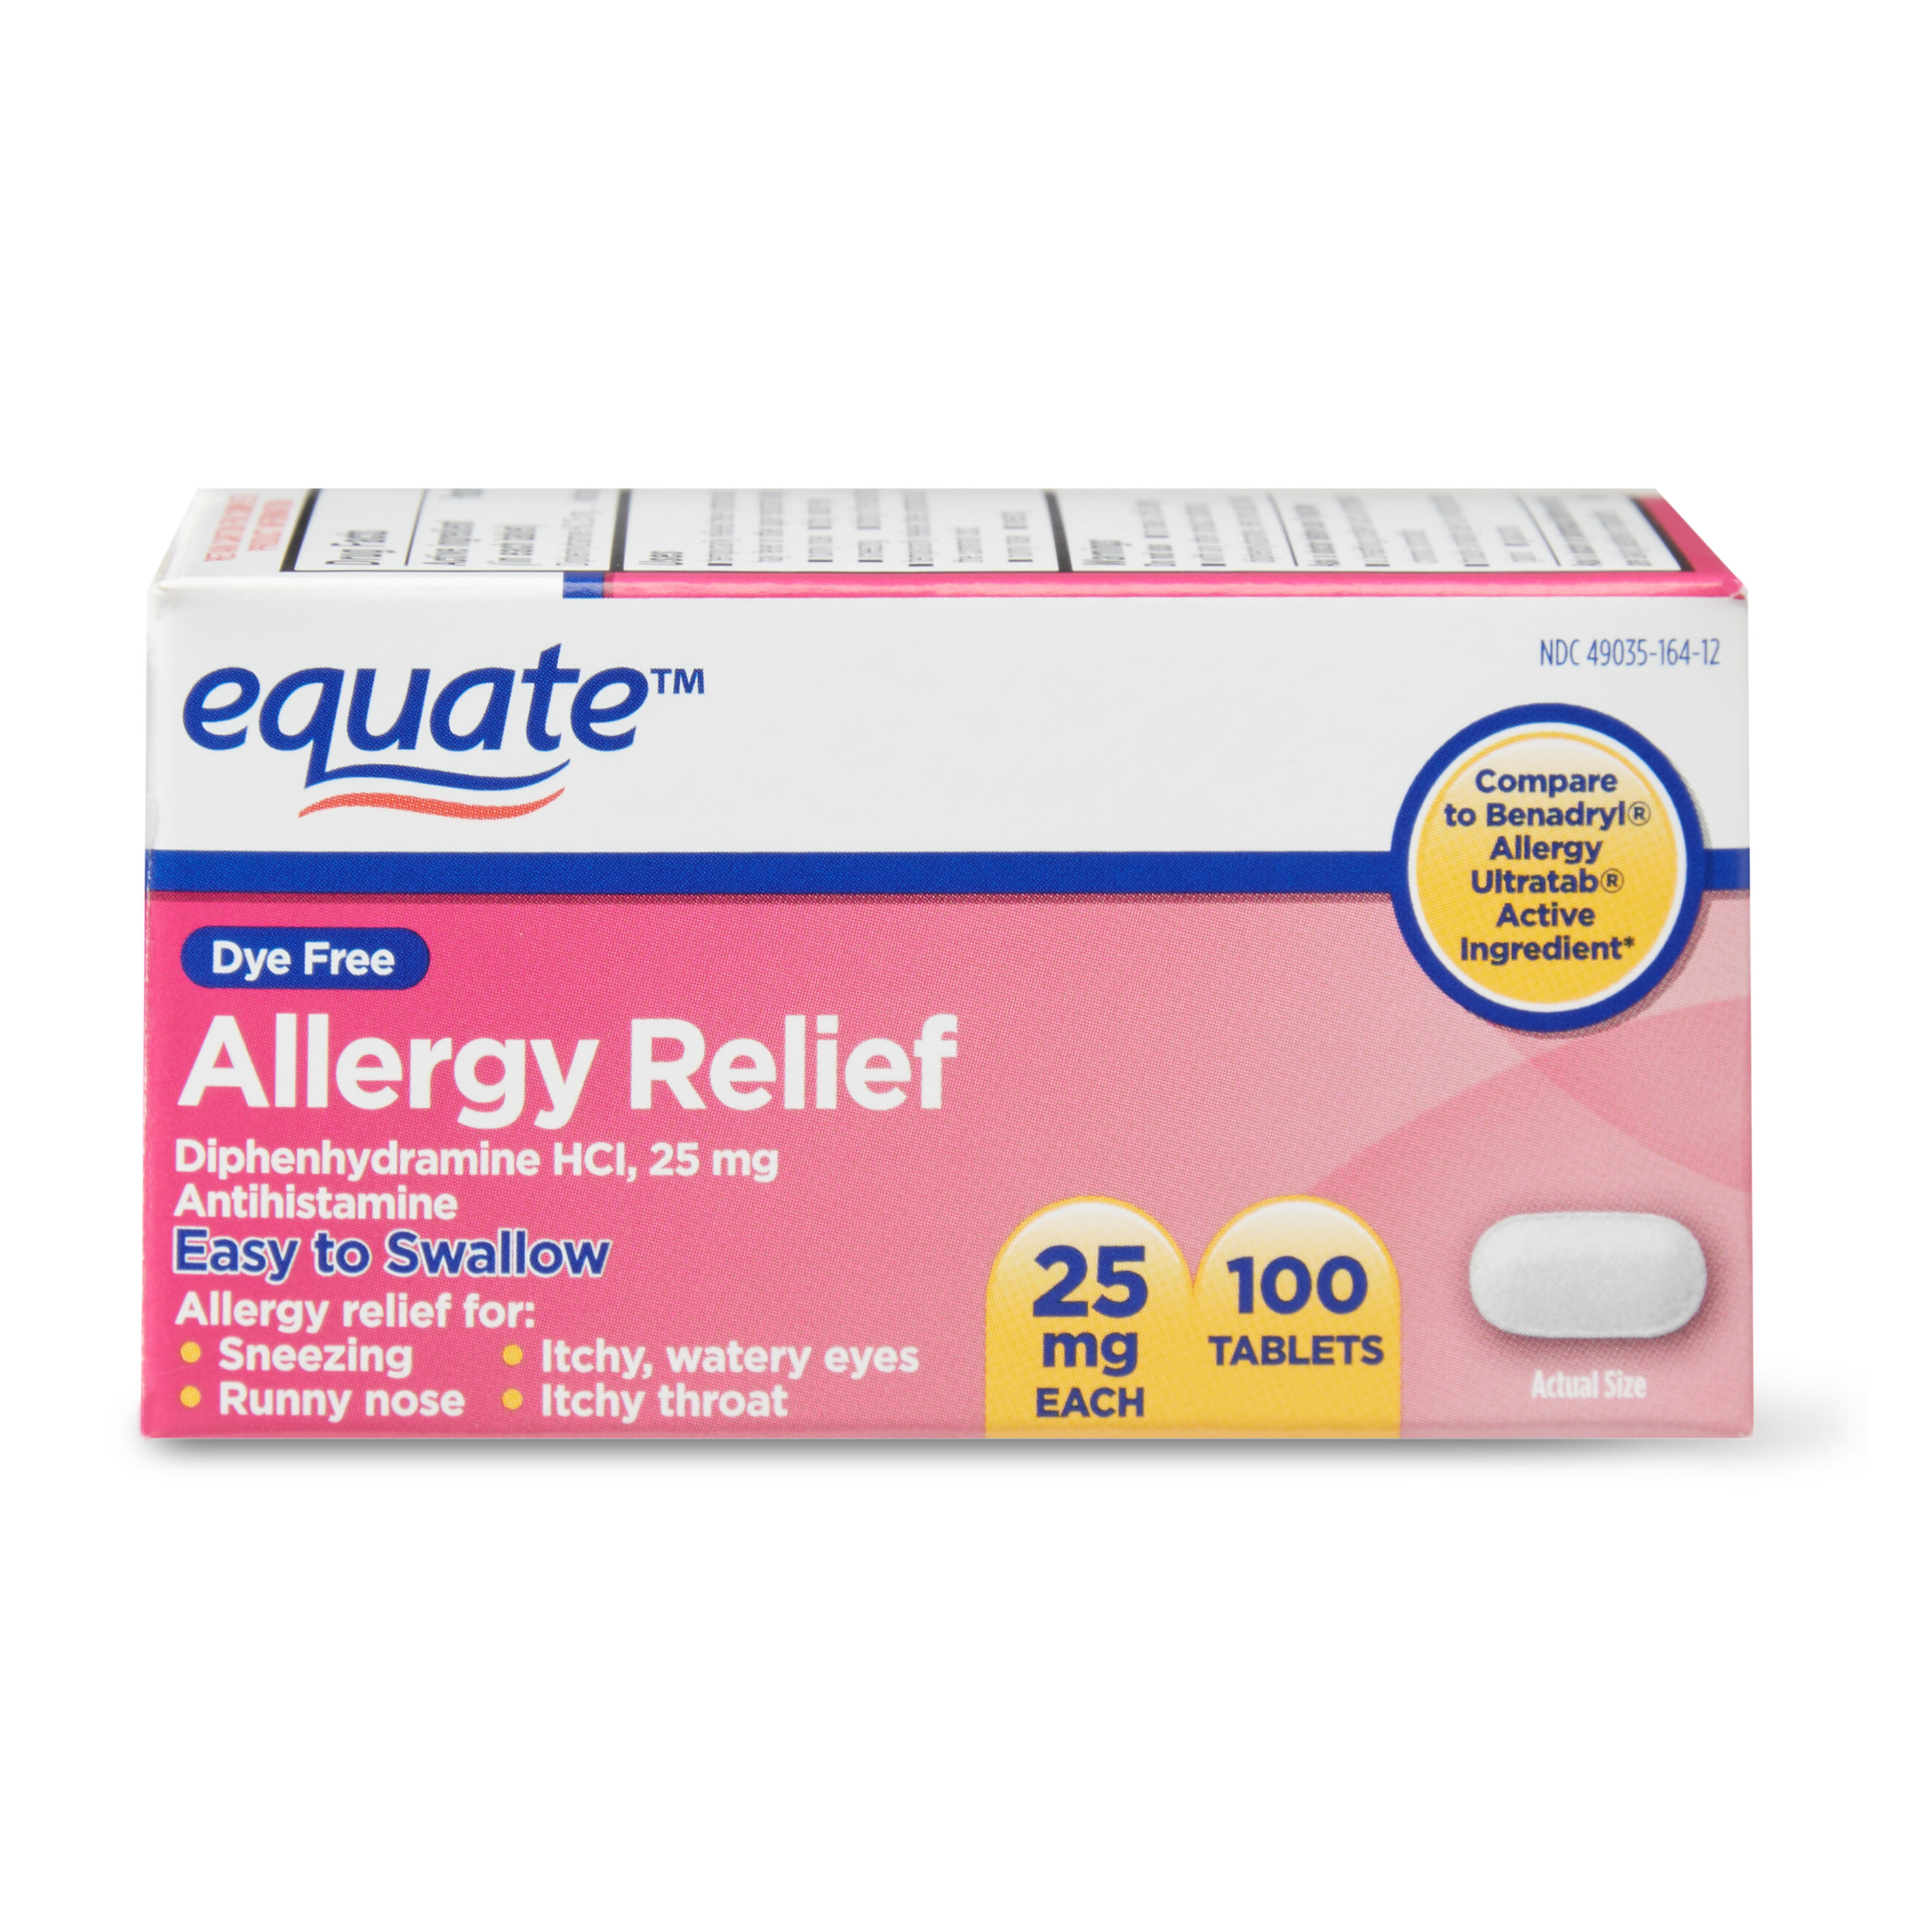 Equate Dye Free Allergy Relief Tablets, 25mg, 100 Count